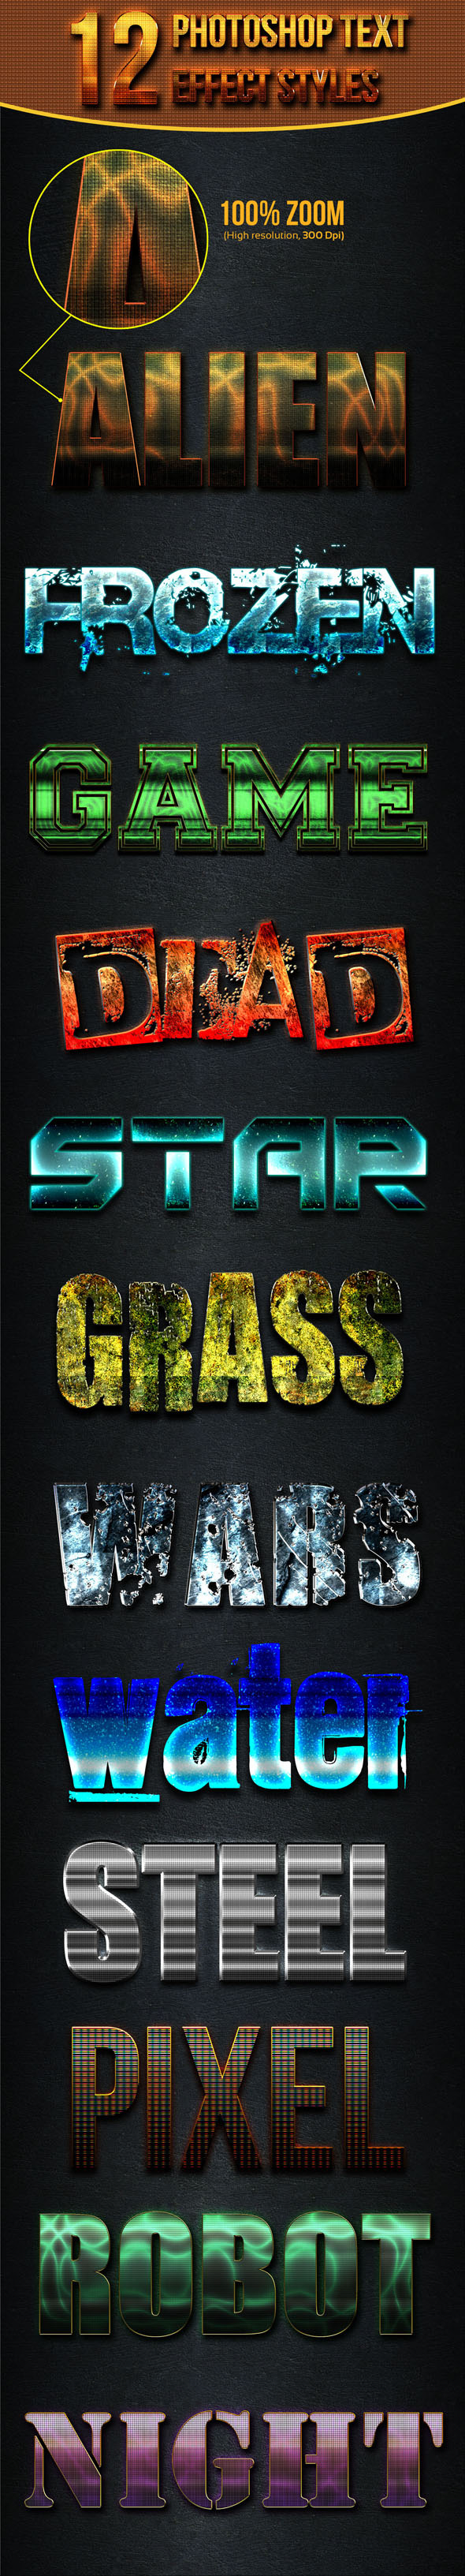 GraphicRiver 12 Photoshop Text Effect Styles Vol 12 11650499